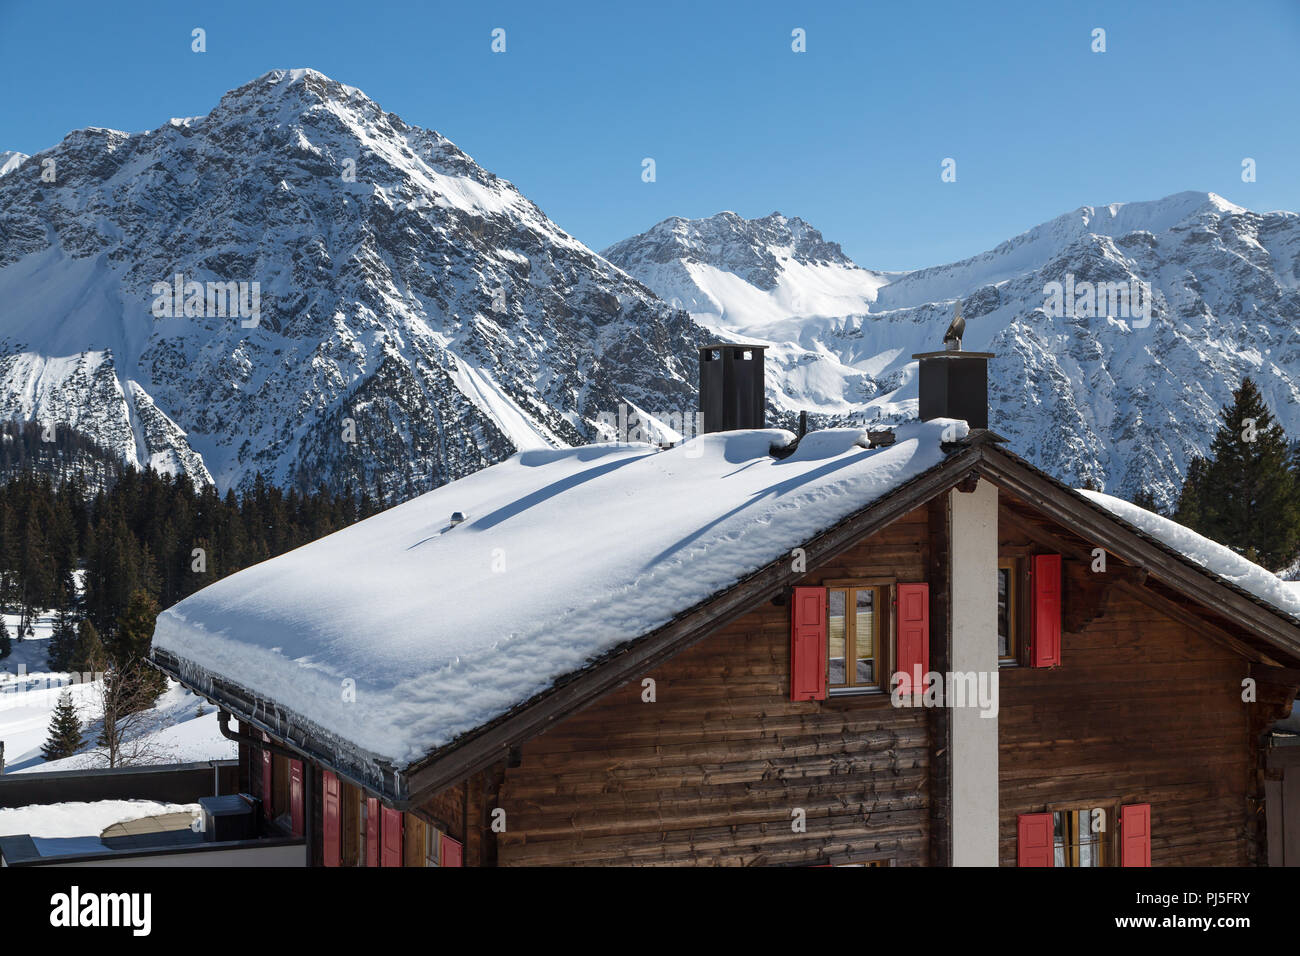 Woodhouse with snowy roof in Arosa Stock Photo